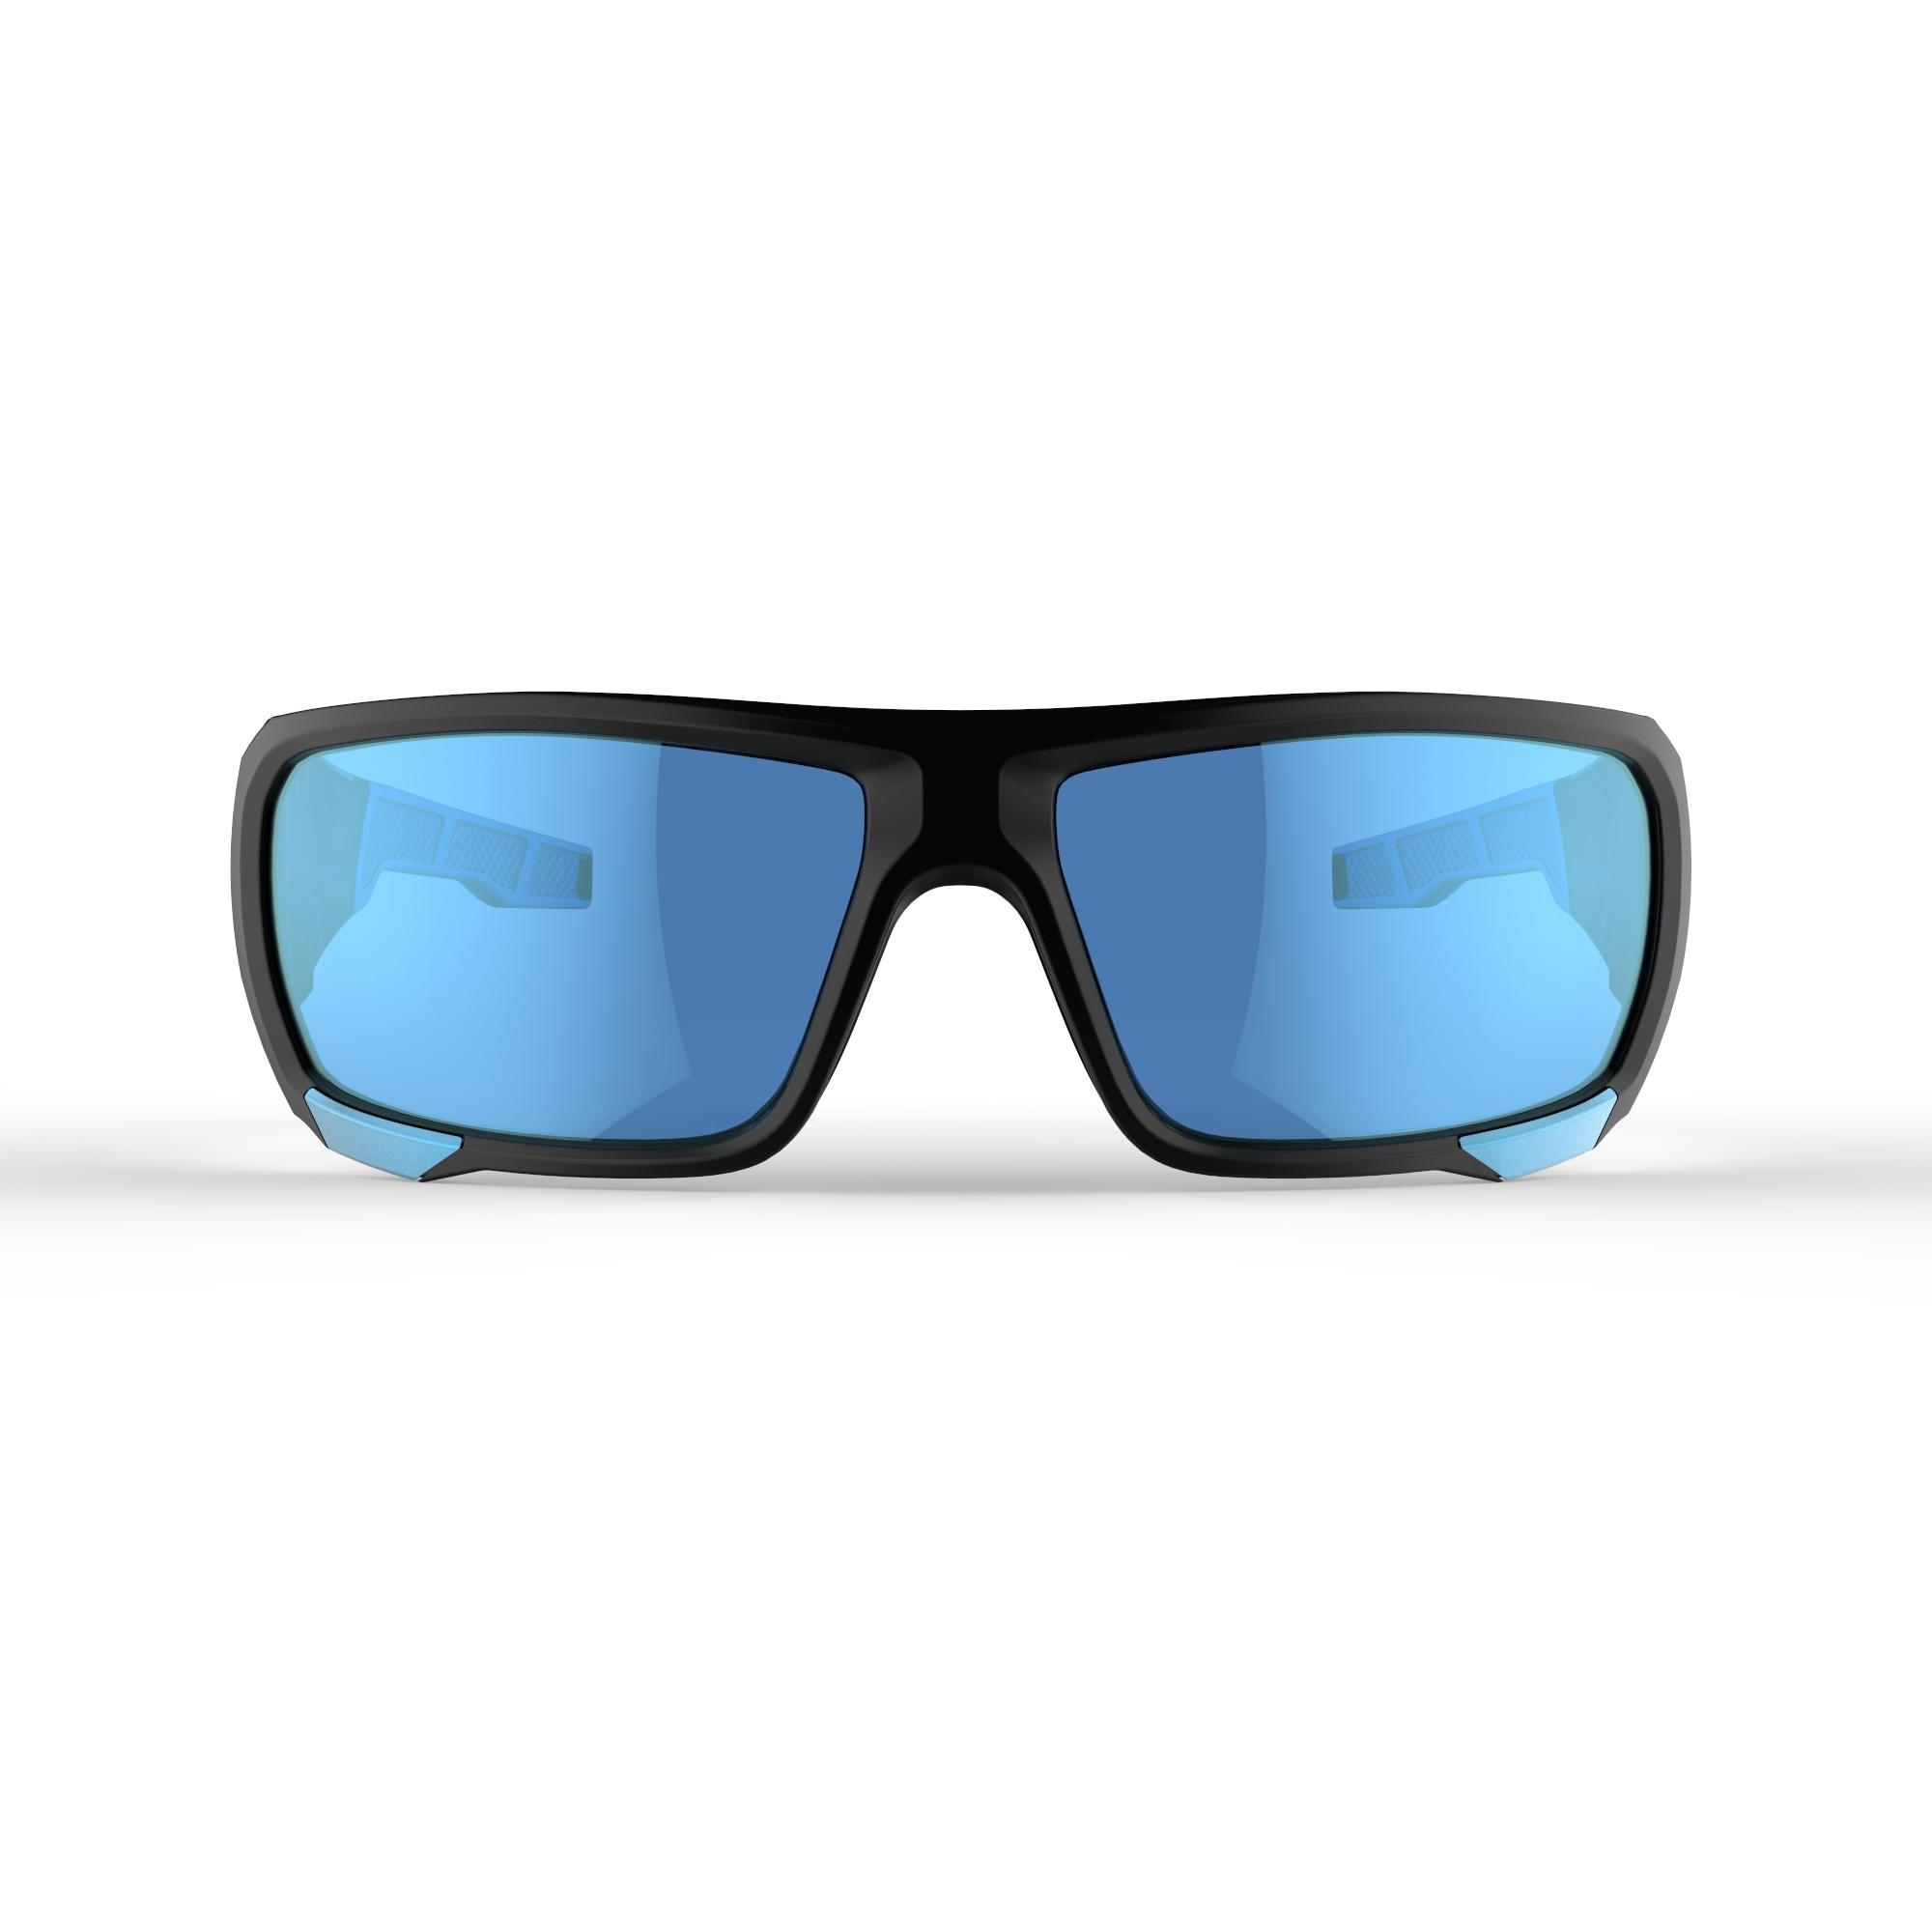 Adult MH910 hiking goggles Cat 4 +2 interchangeable lenses – Black/Blue